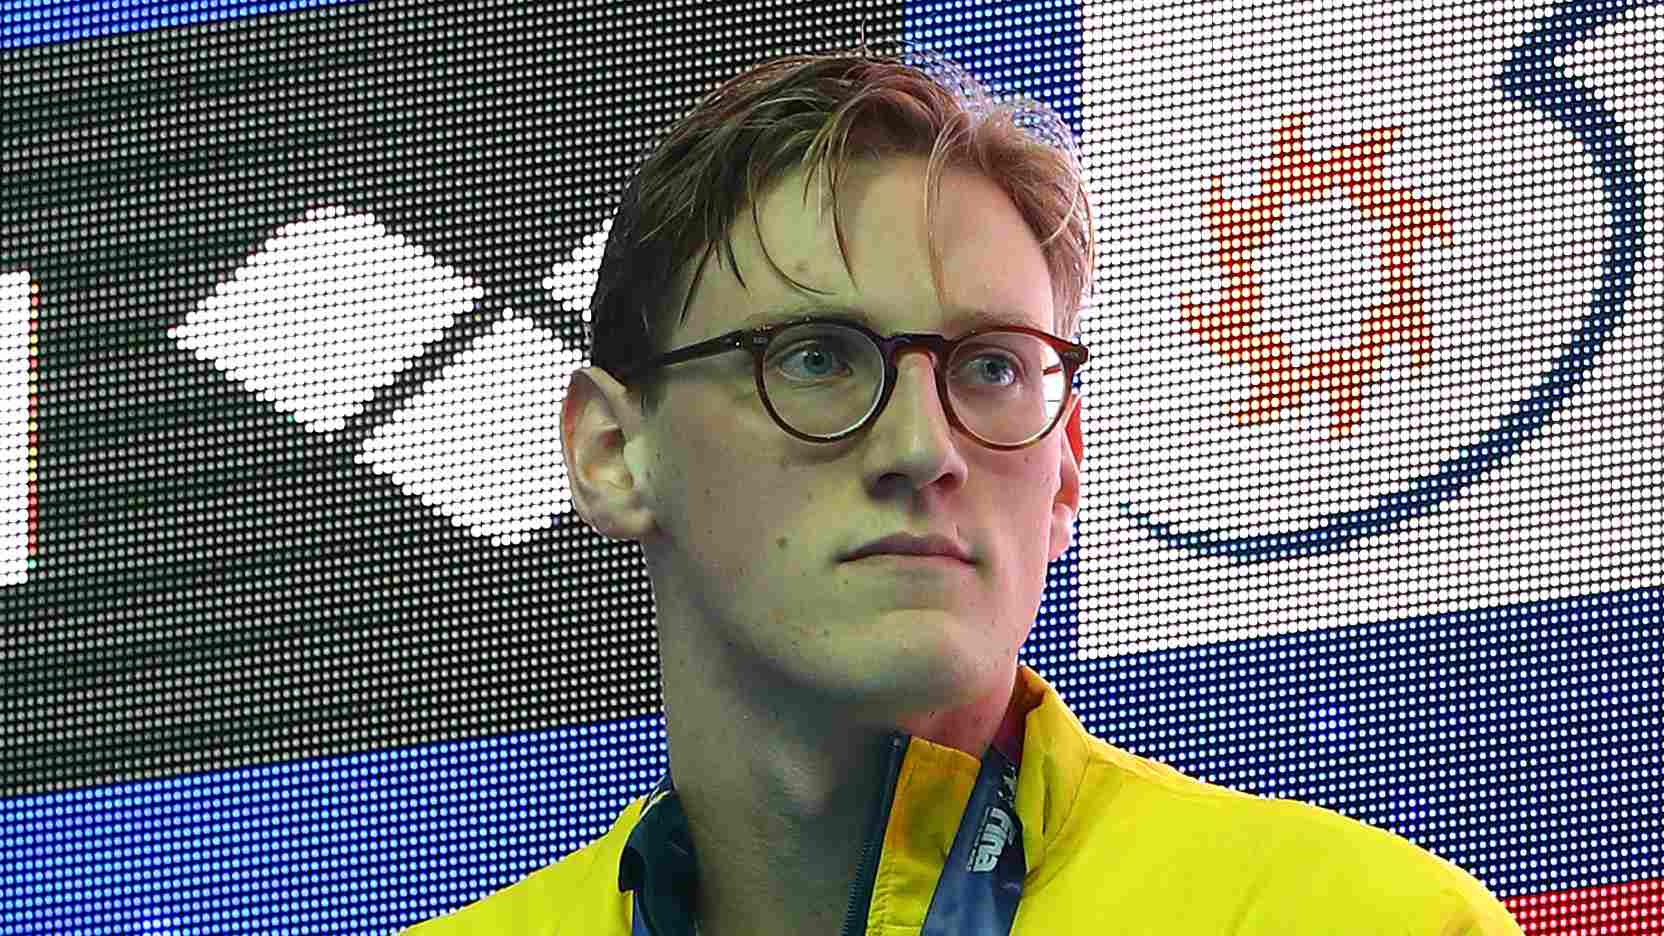 """Mack Horton's controversial refusal to share podium with """"drug cheat"""" causes furore"""